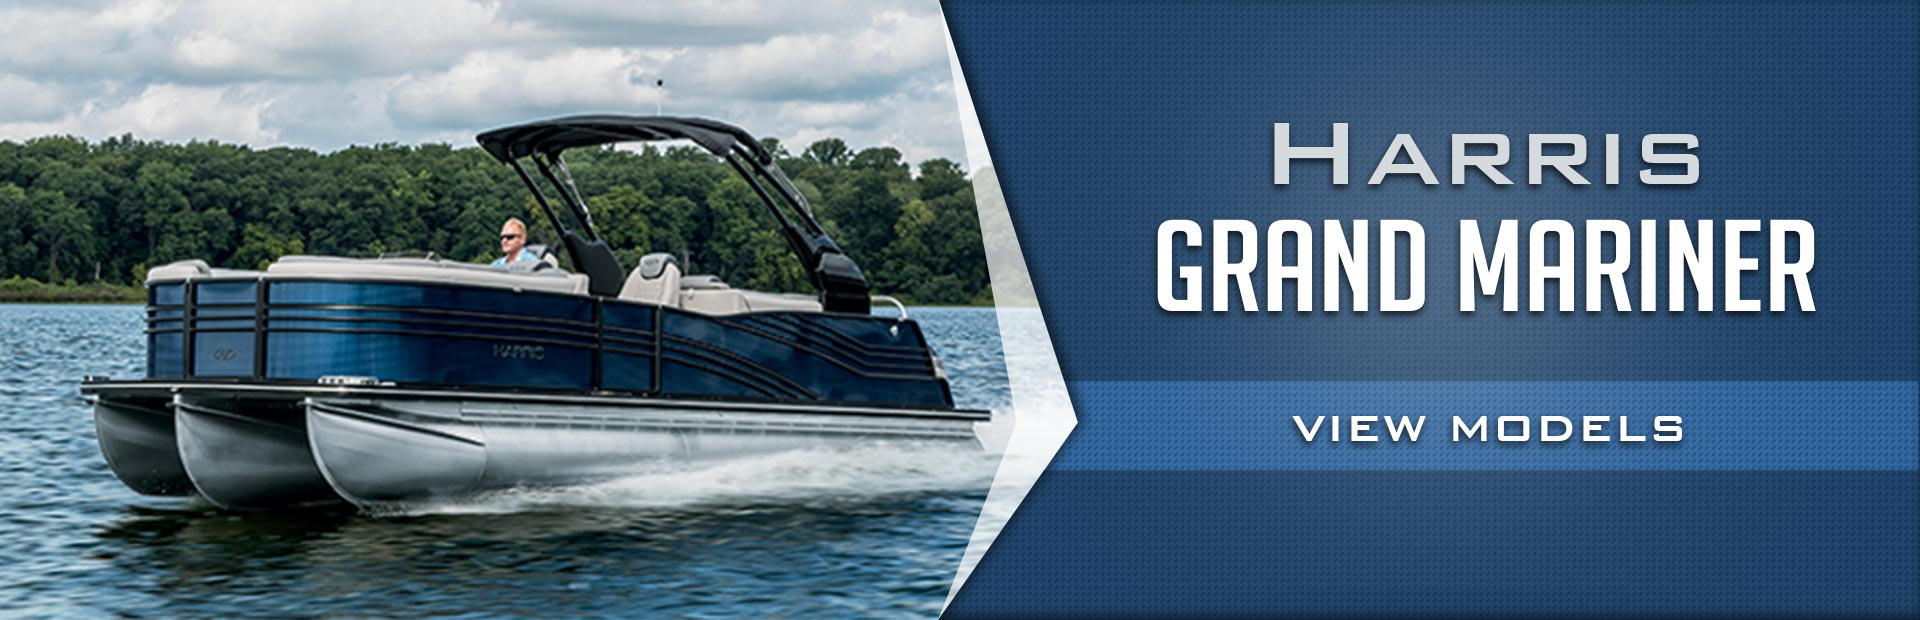 Click here to see the new Harris Grand Mariner models!